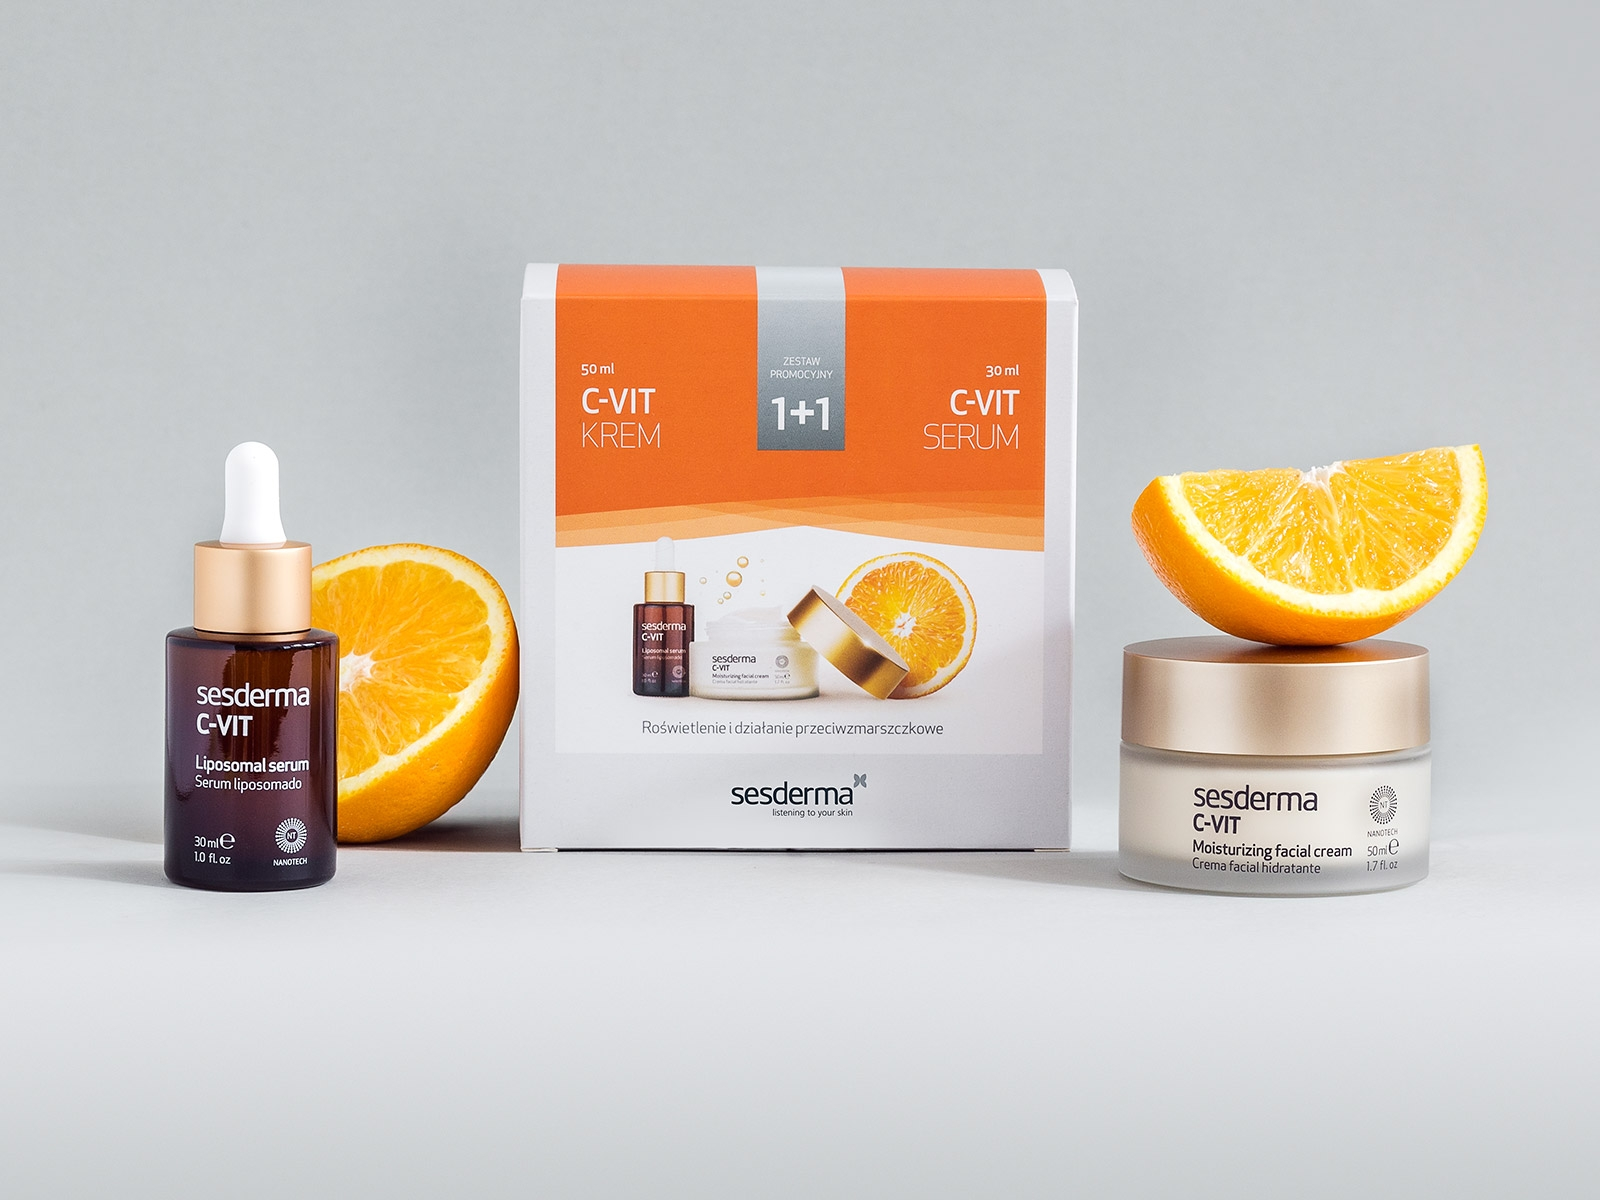 C-VIT KREM 50 ml + SERUM 30 ml